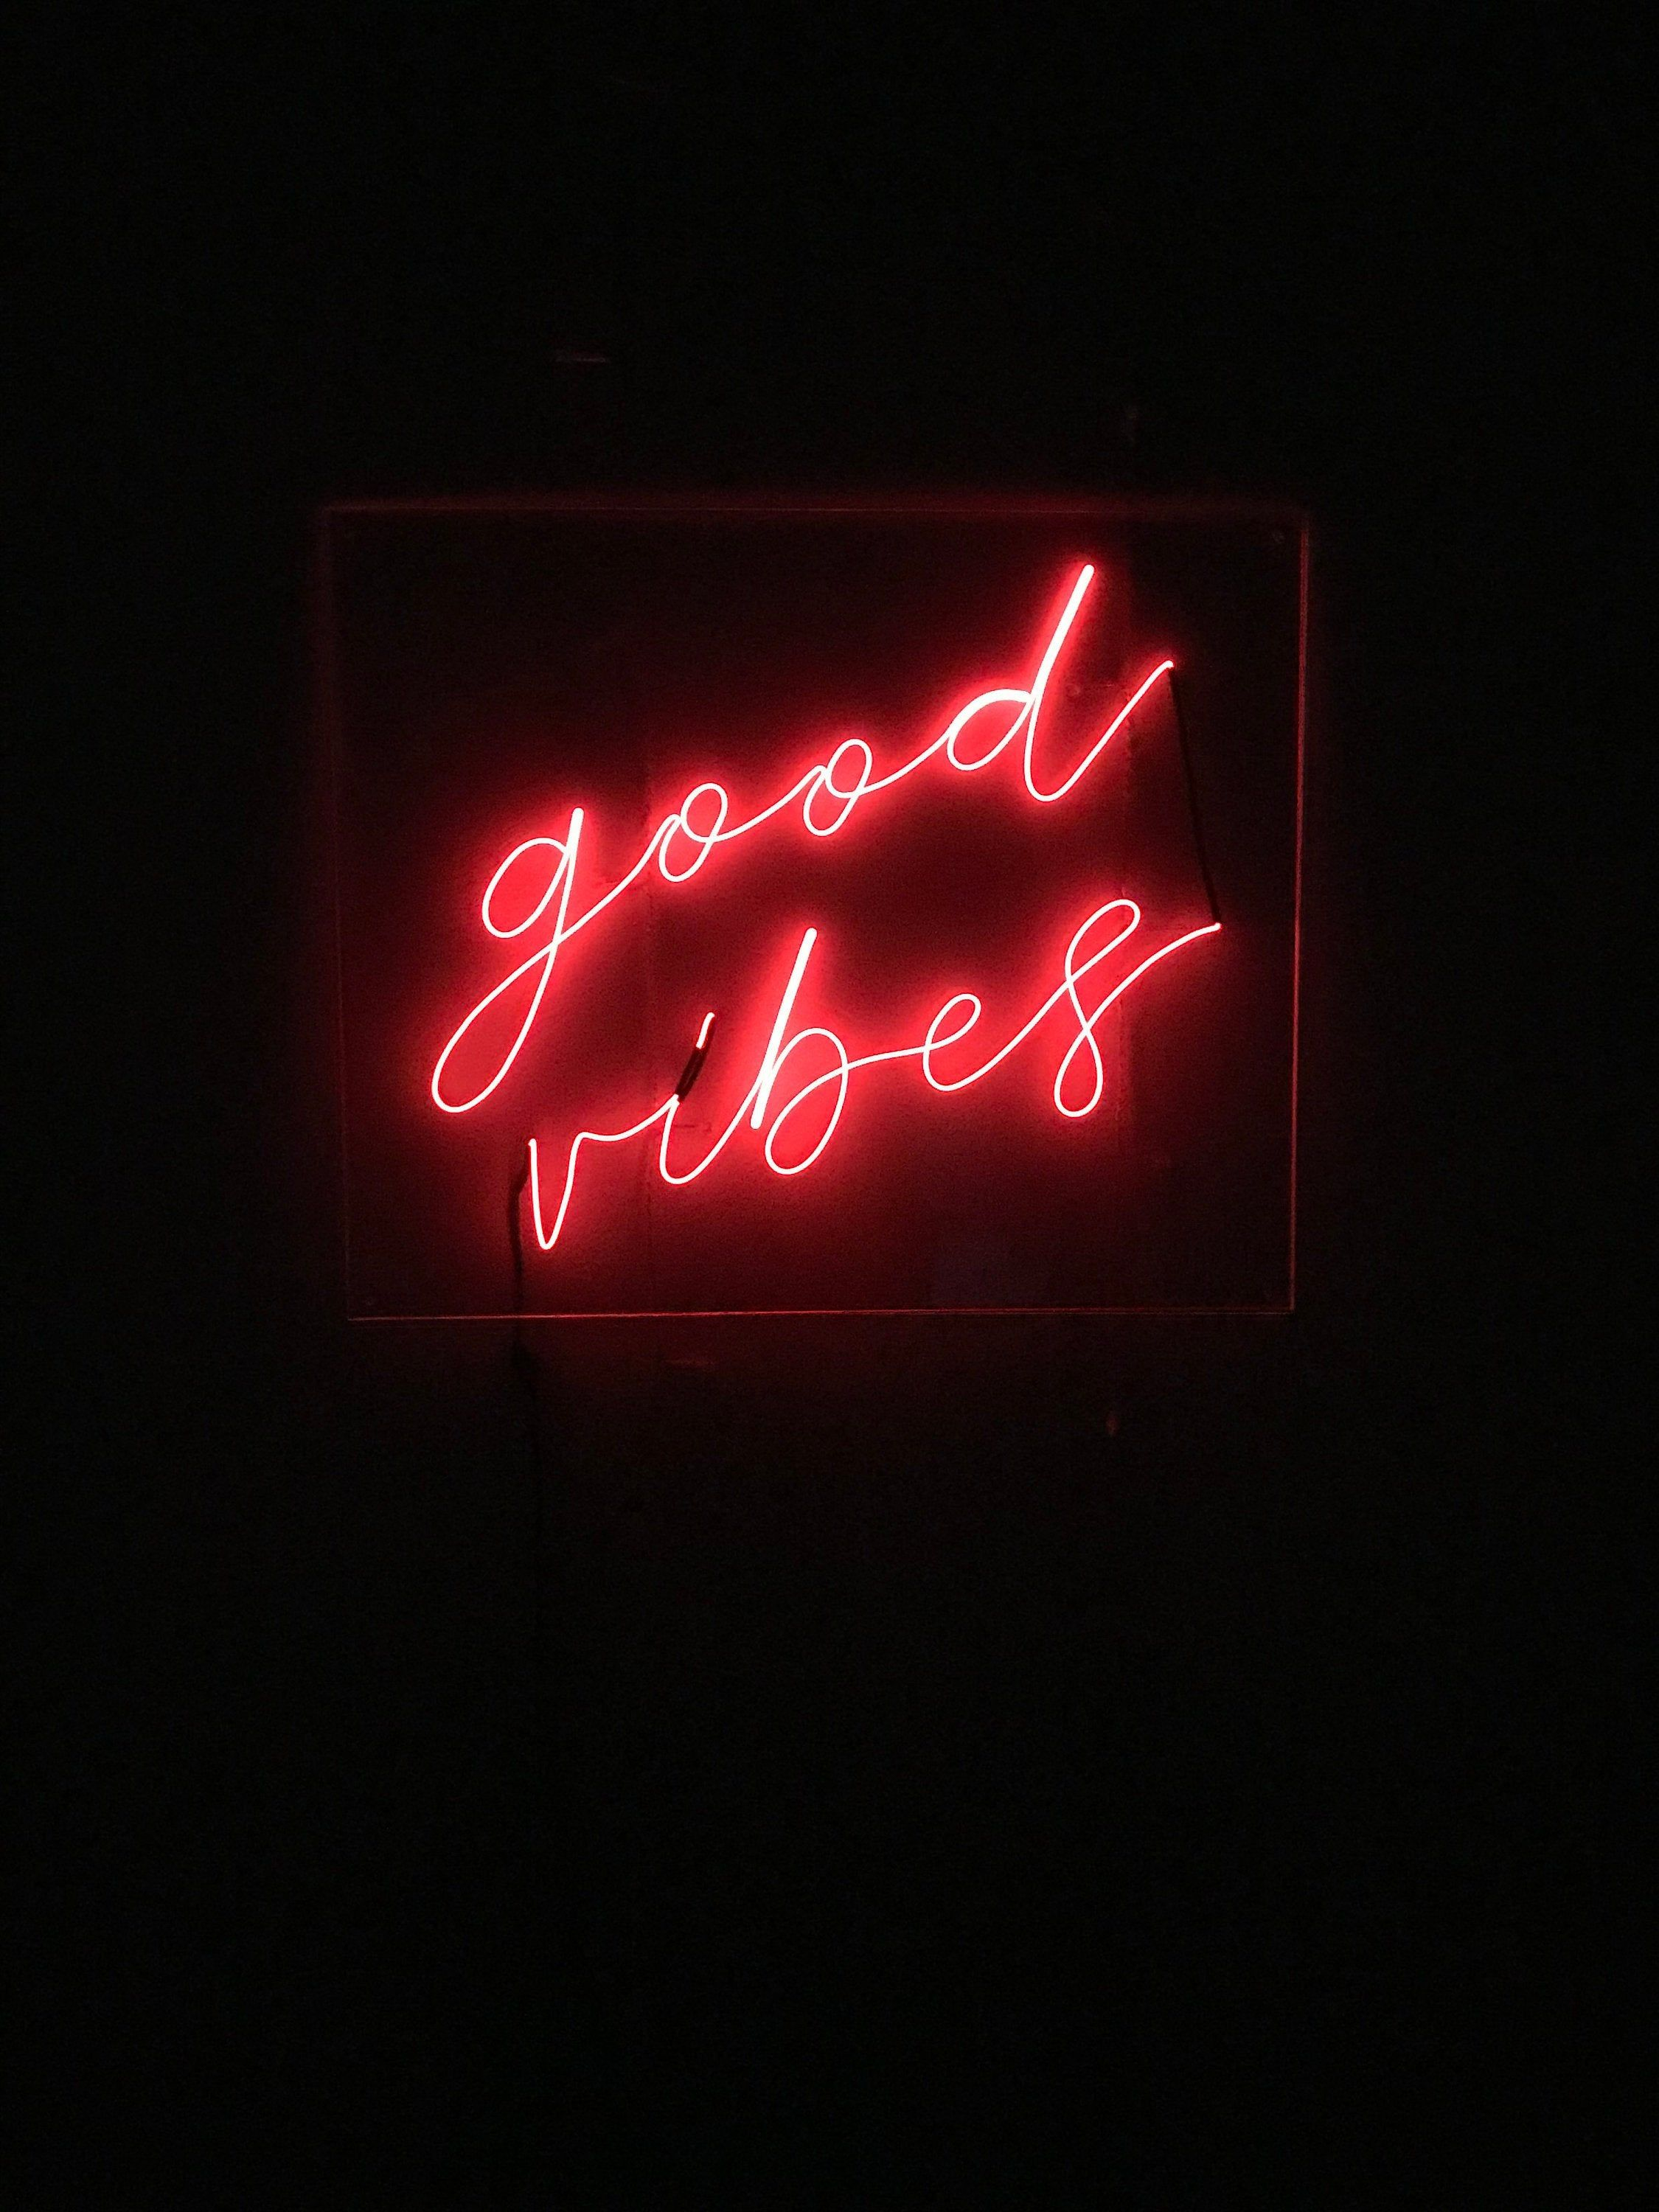 Good Vibes Neon Sign 18 In X 15 In Custom Handmade Red And Black Wallpaper Red Aesthetic Grunge Black Aesthetic Wallpaper